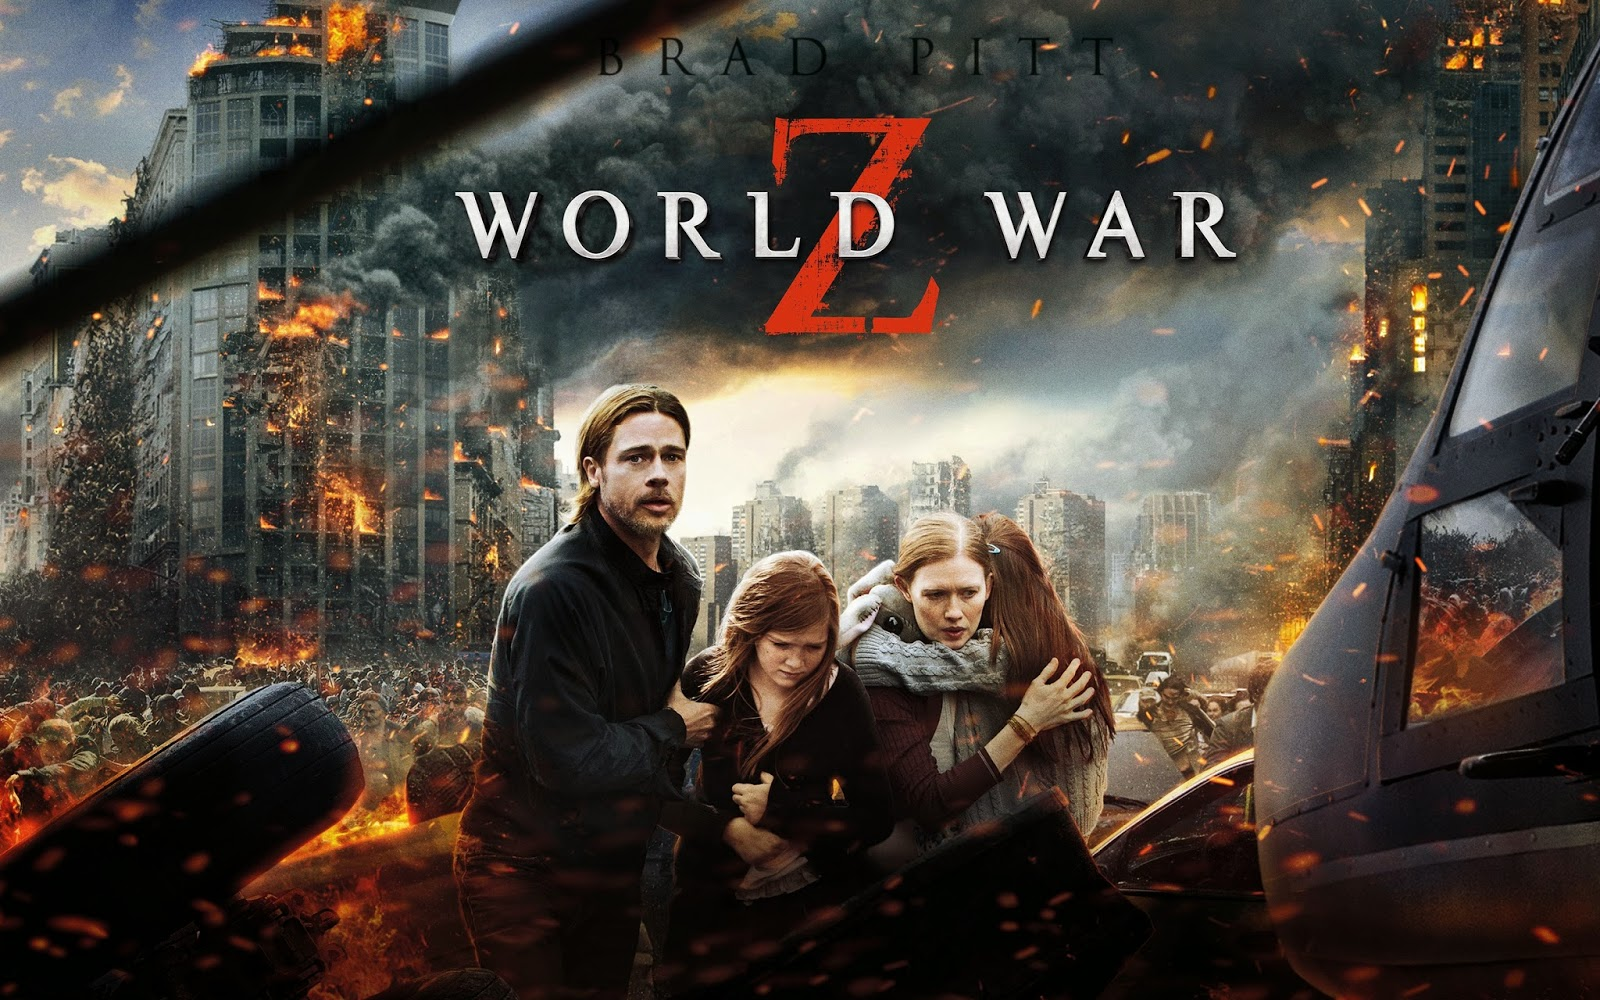 Inception Hindi Dubbed Hd: World War Z (2013) Full Movie Watch HD Online Free